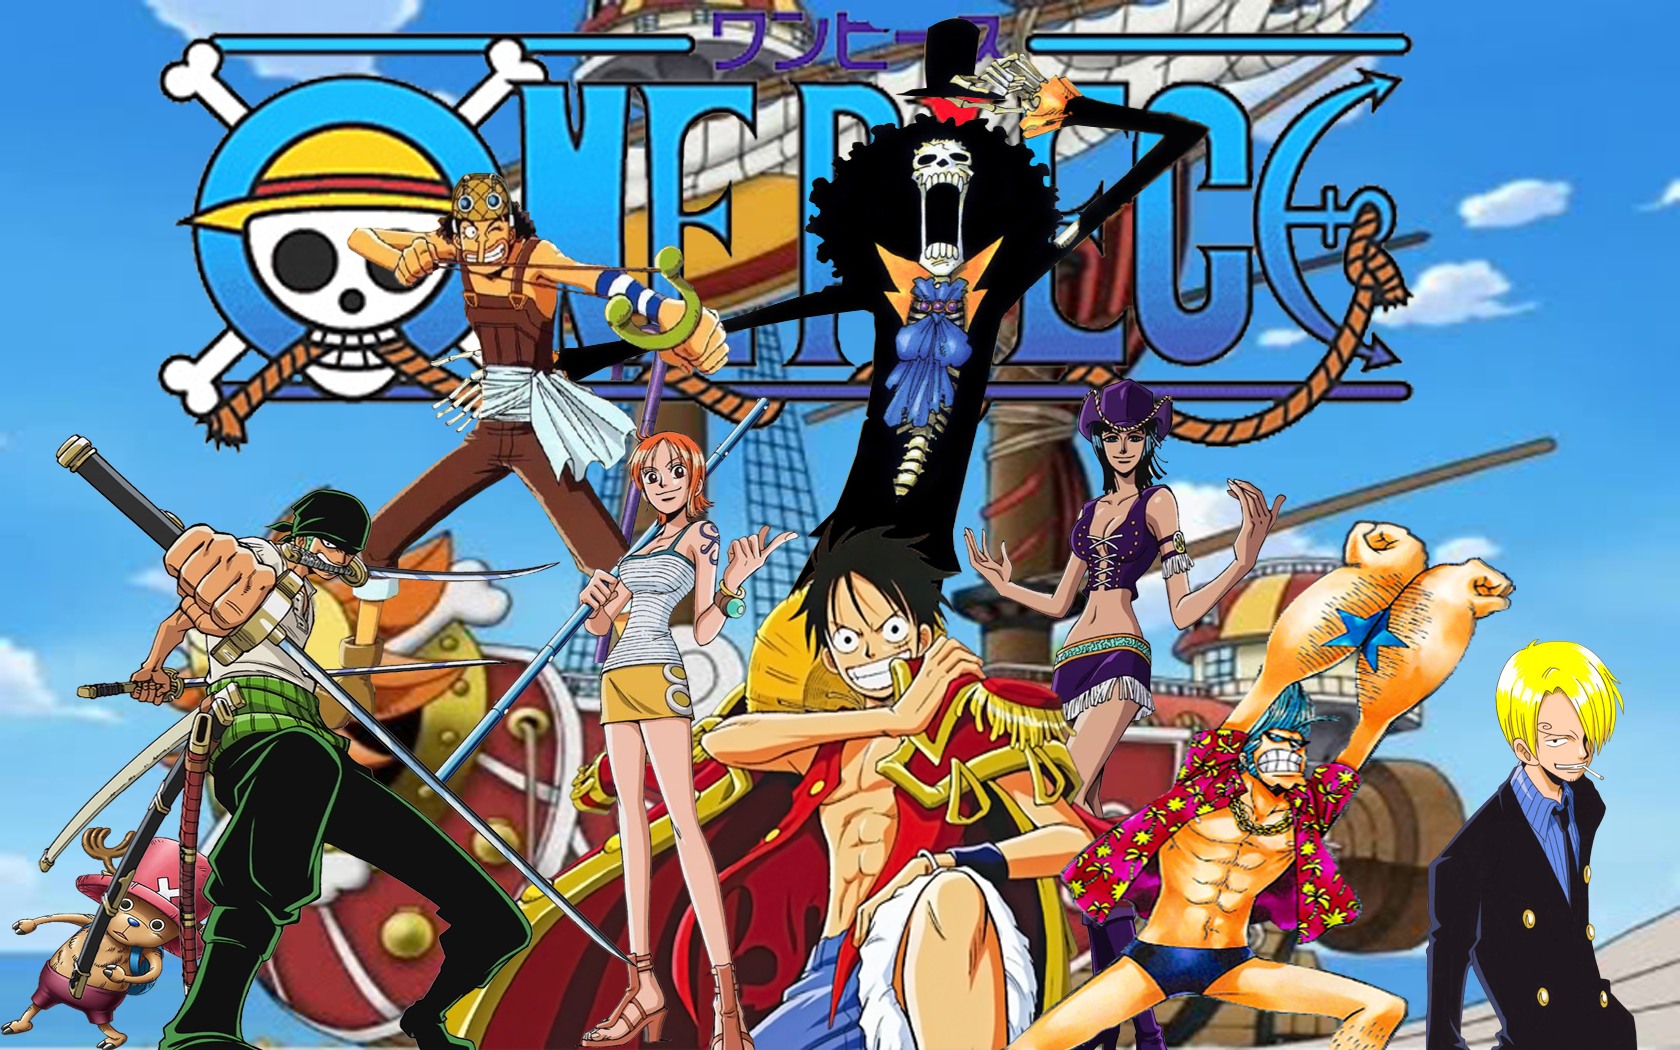 Free Download One Piece 1080p Anime Wallpaper - One Piece 1080p ...